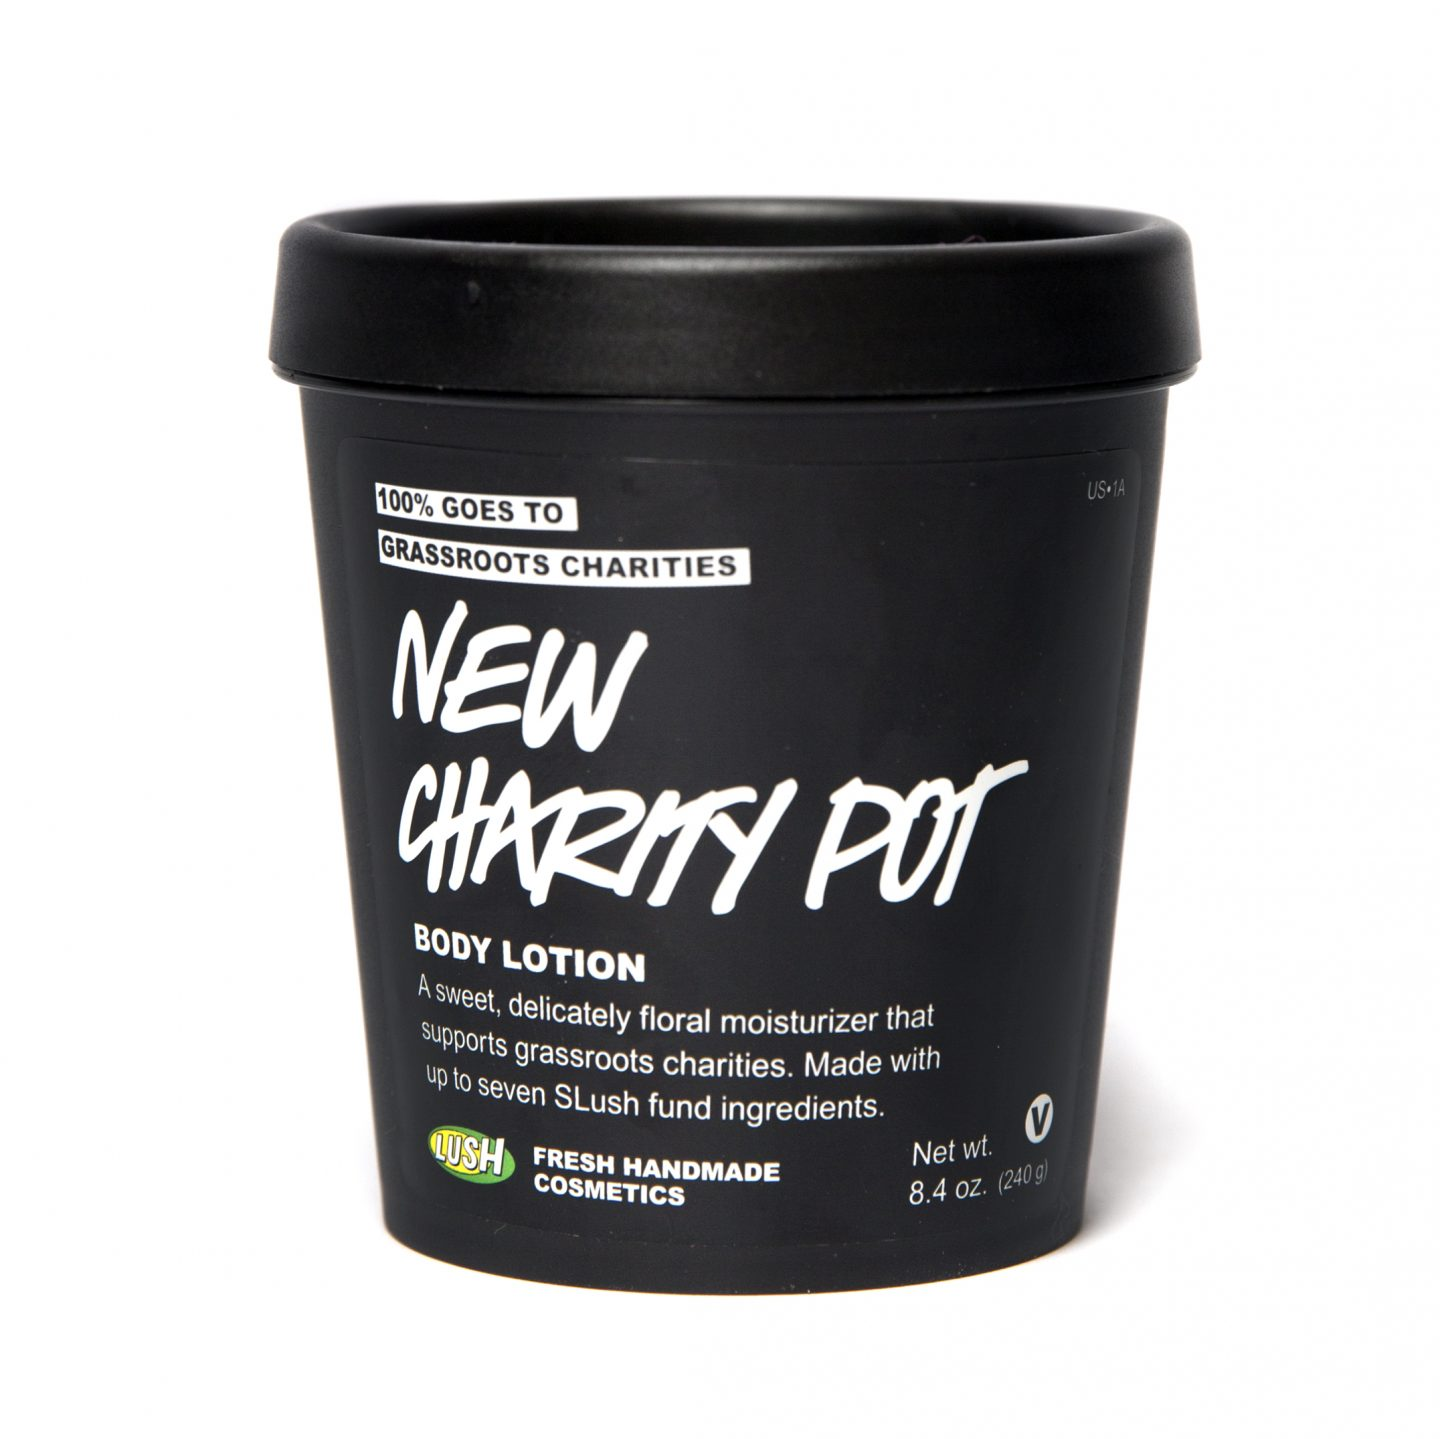 Lush Charity Pot moisturiser, £12.95 for 240g